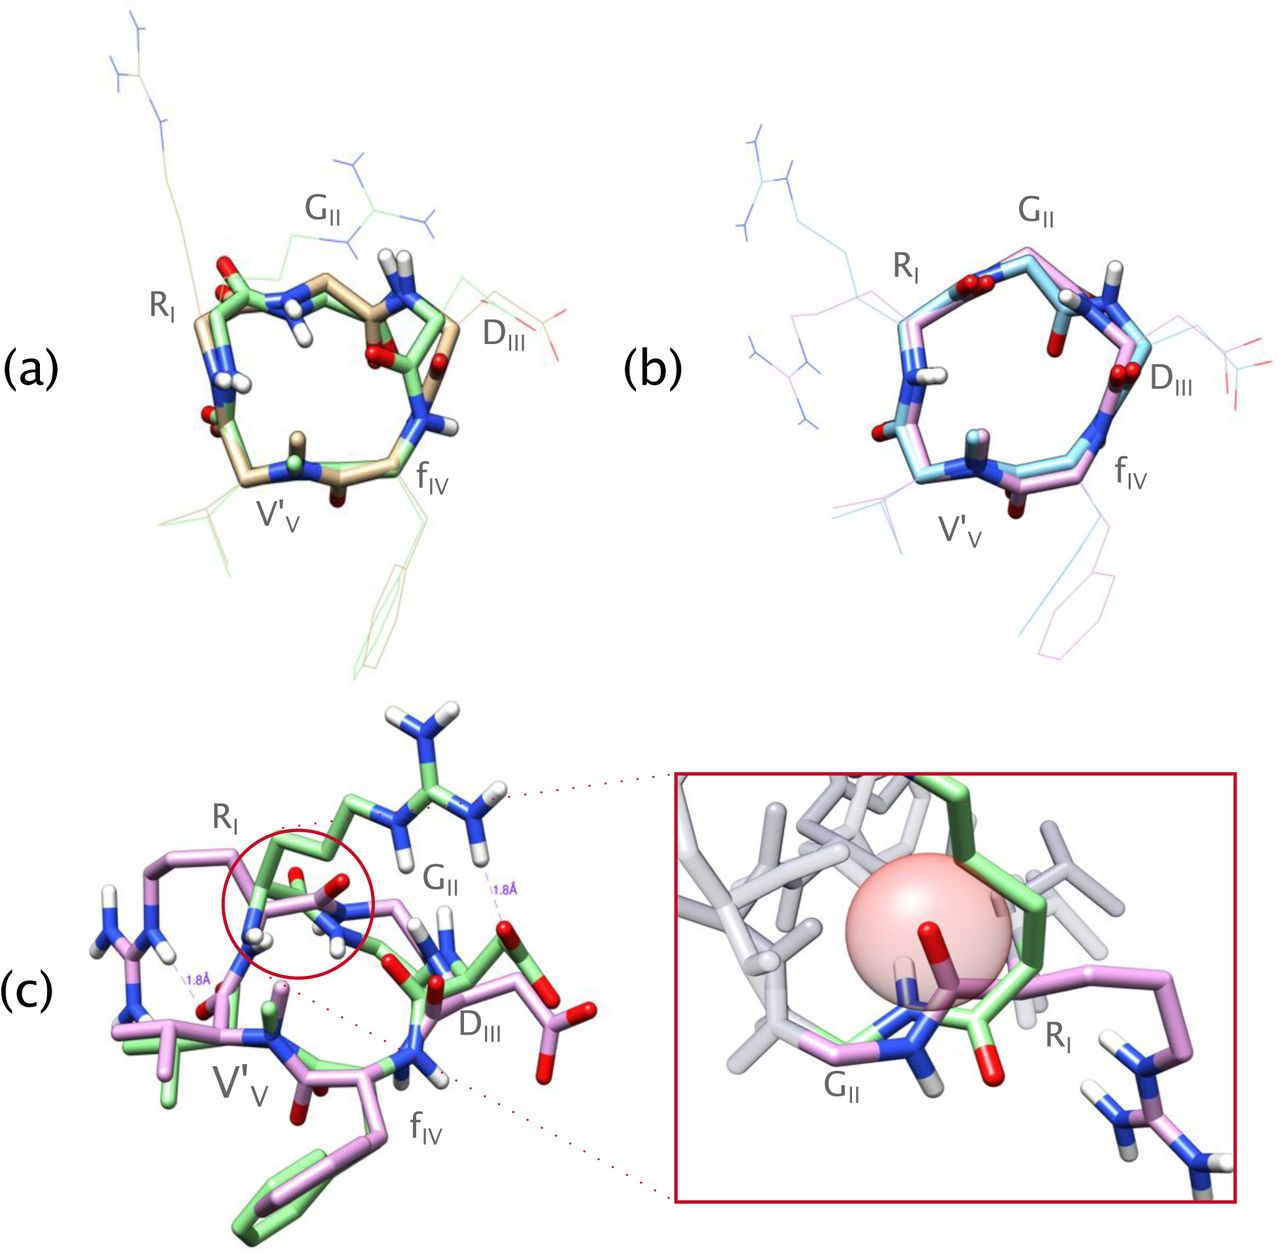 Exhaustive exploration of the conformational landscape of small